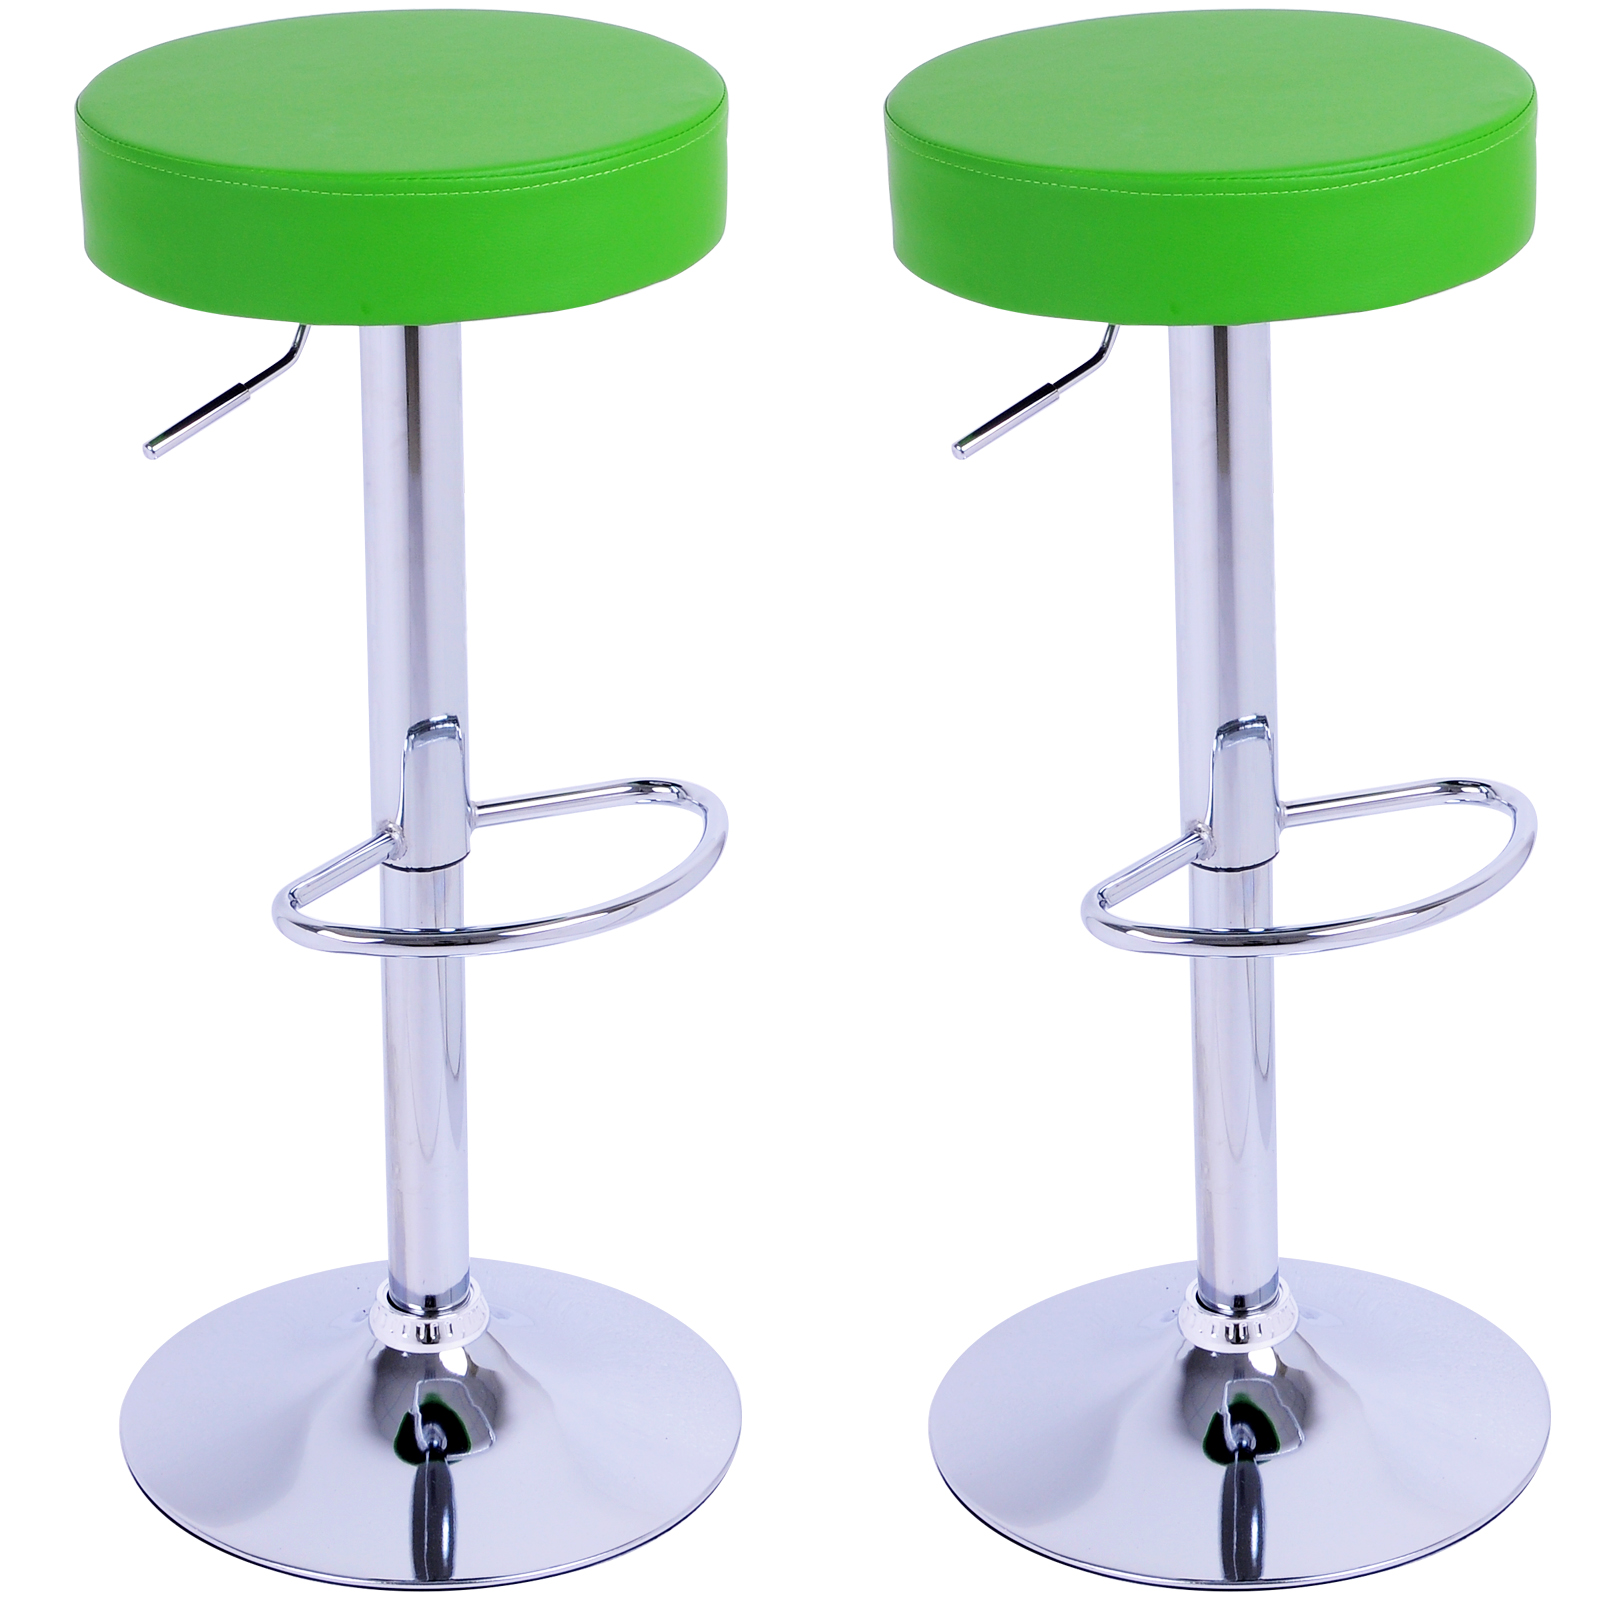 Bar Stools Set Of 2 Breakfast Kitchen Chair Adjustable Barstool Green U020 Ebay